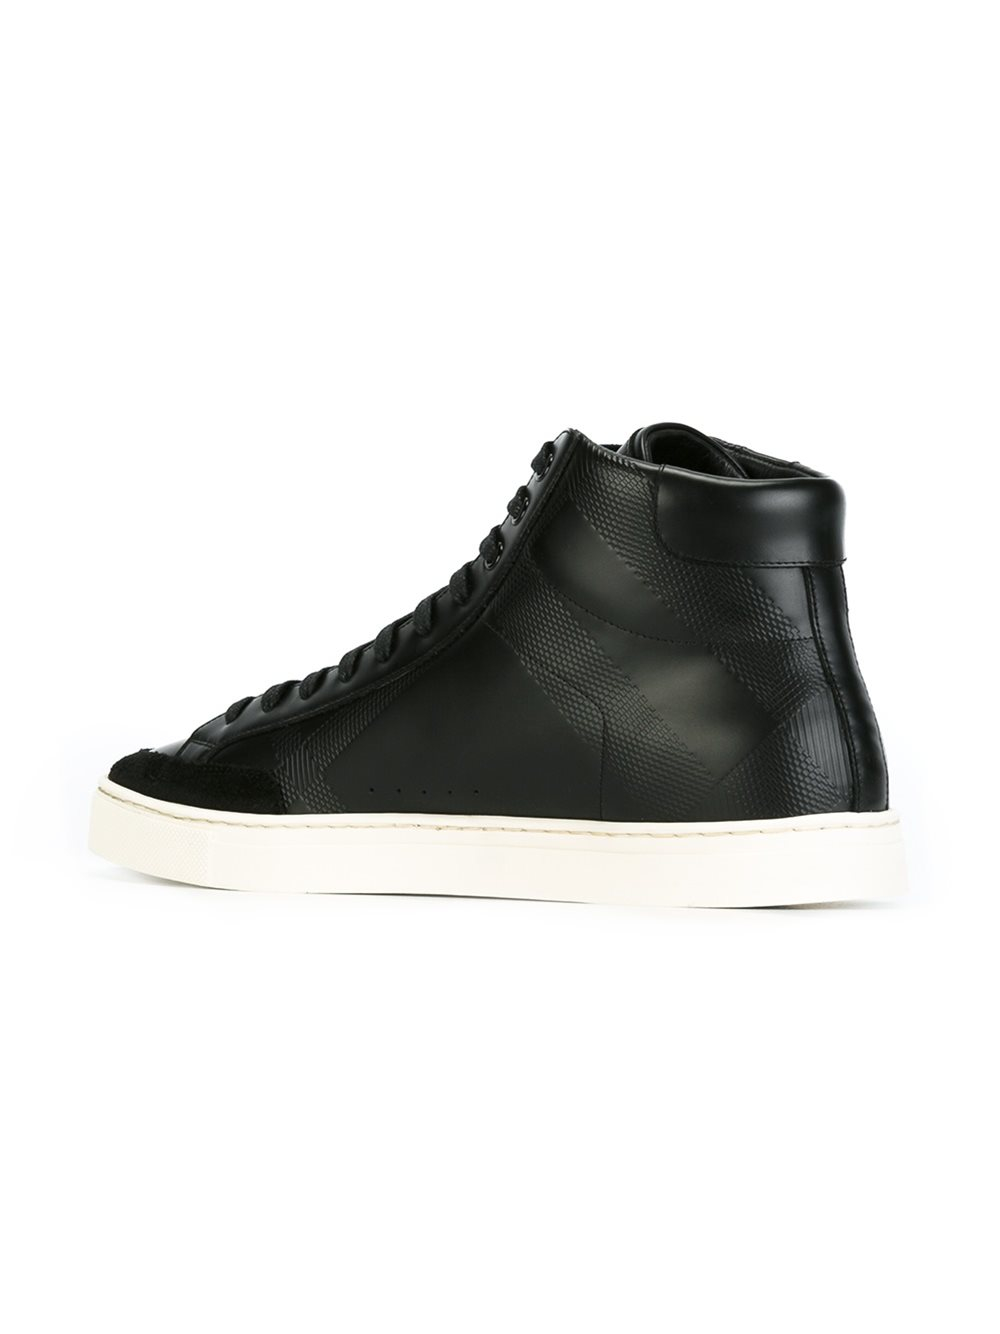 Lyst - Burberry High-Top Sneakers in Black for Men